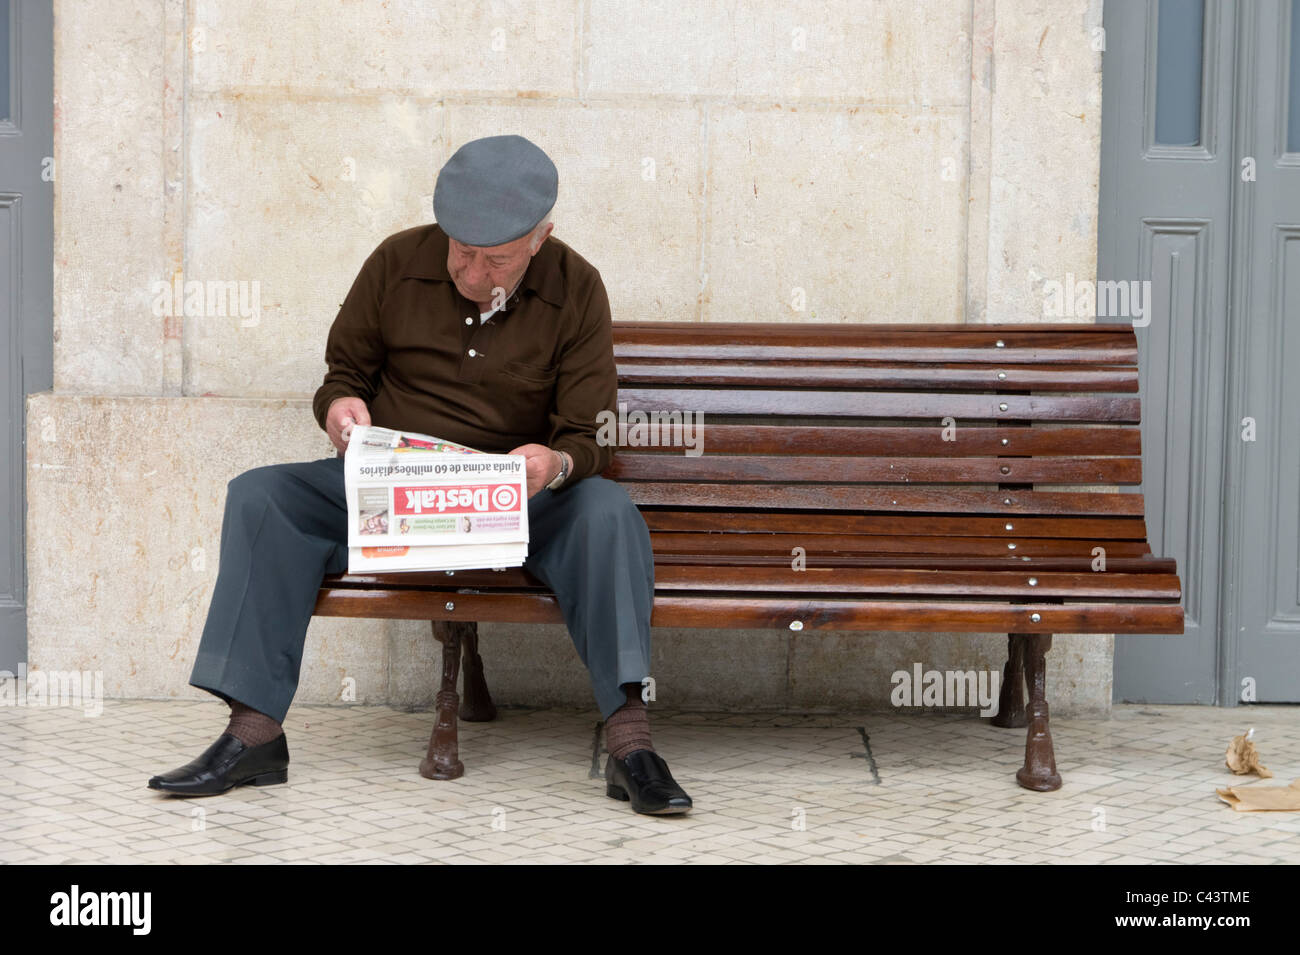 old man reading newspaper on a public bench stock photo: 36964606